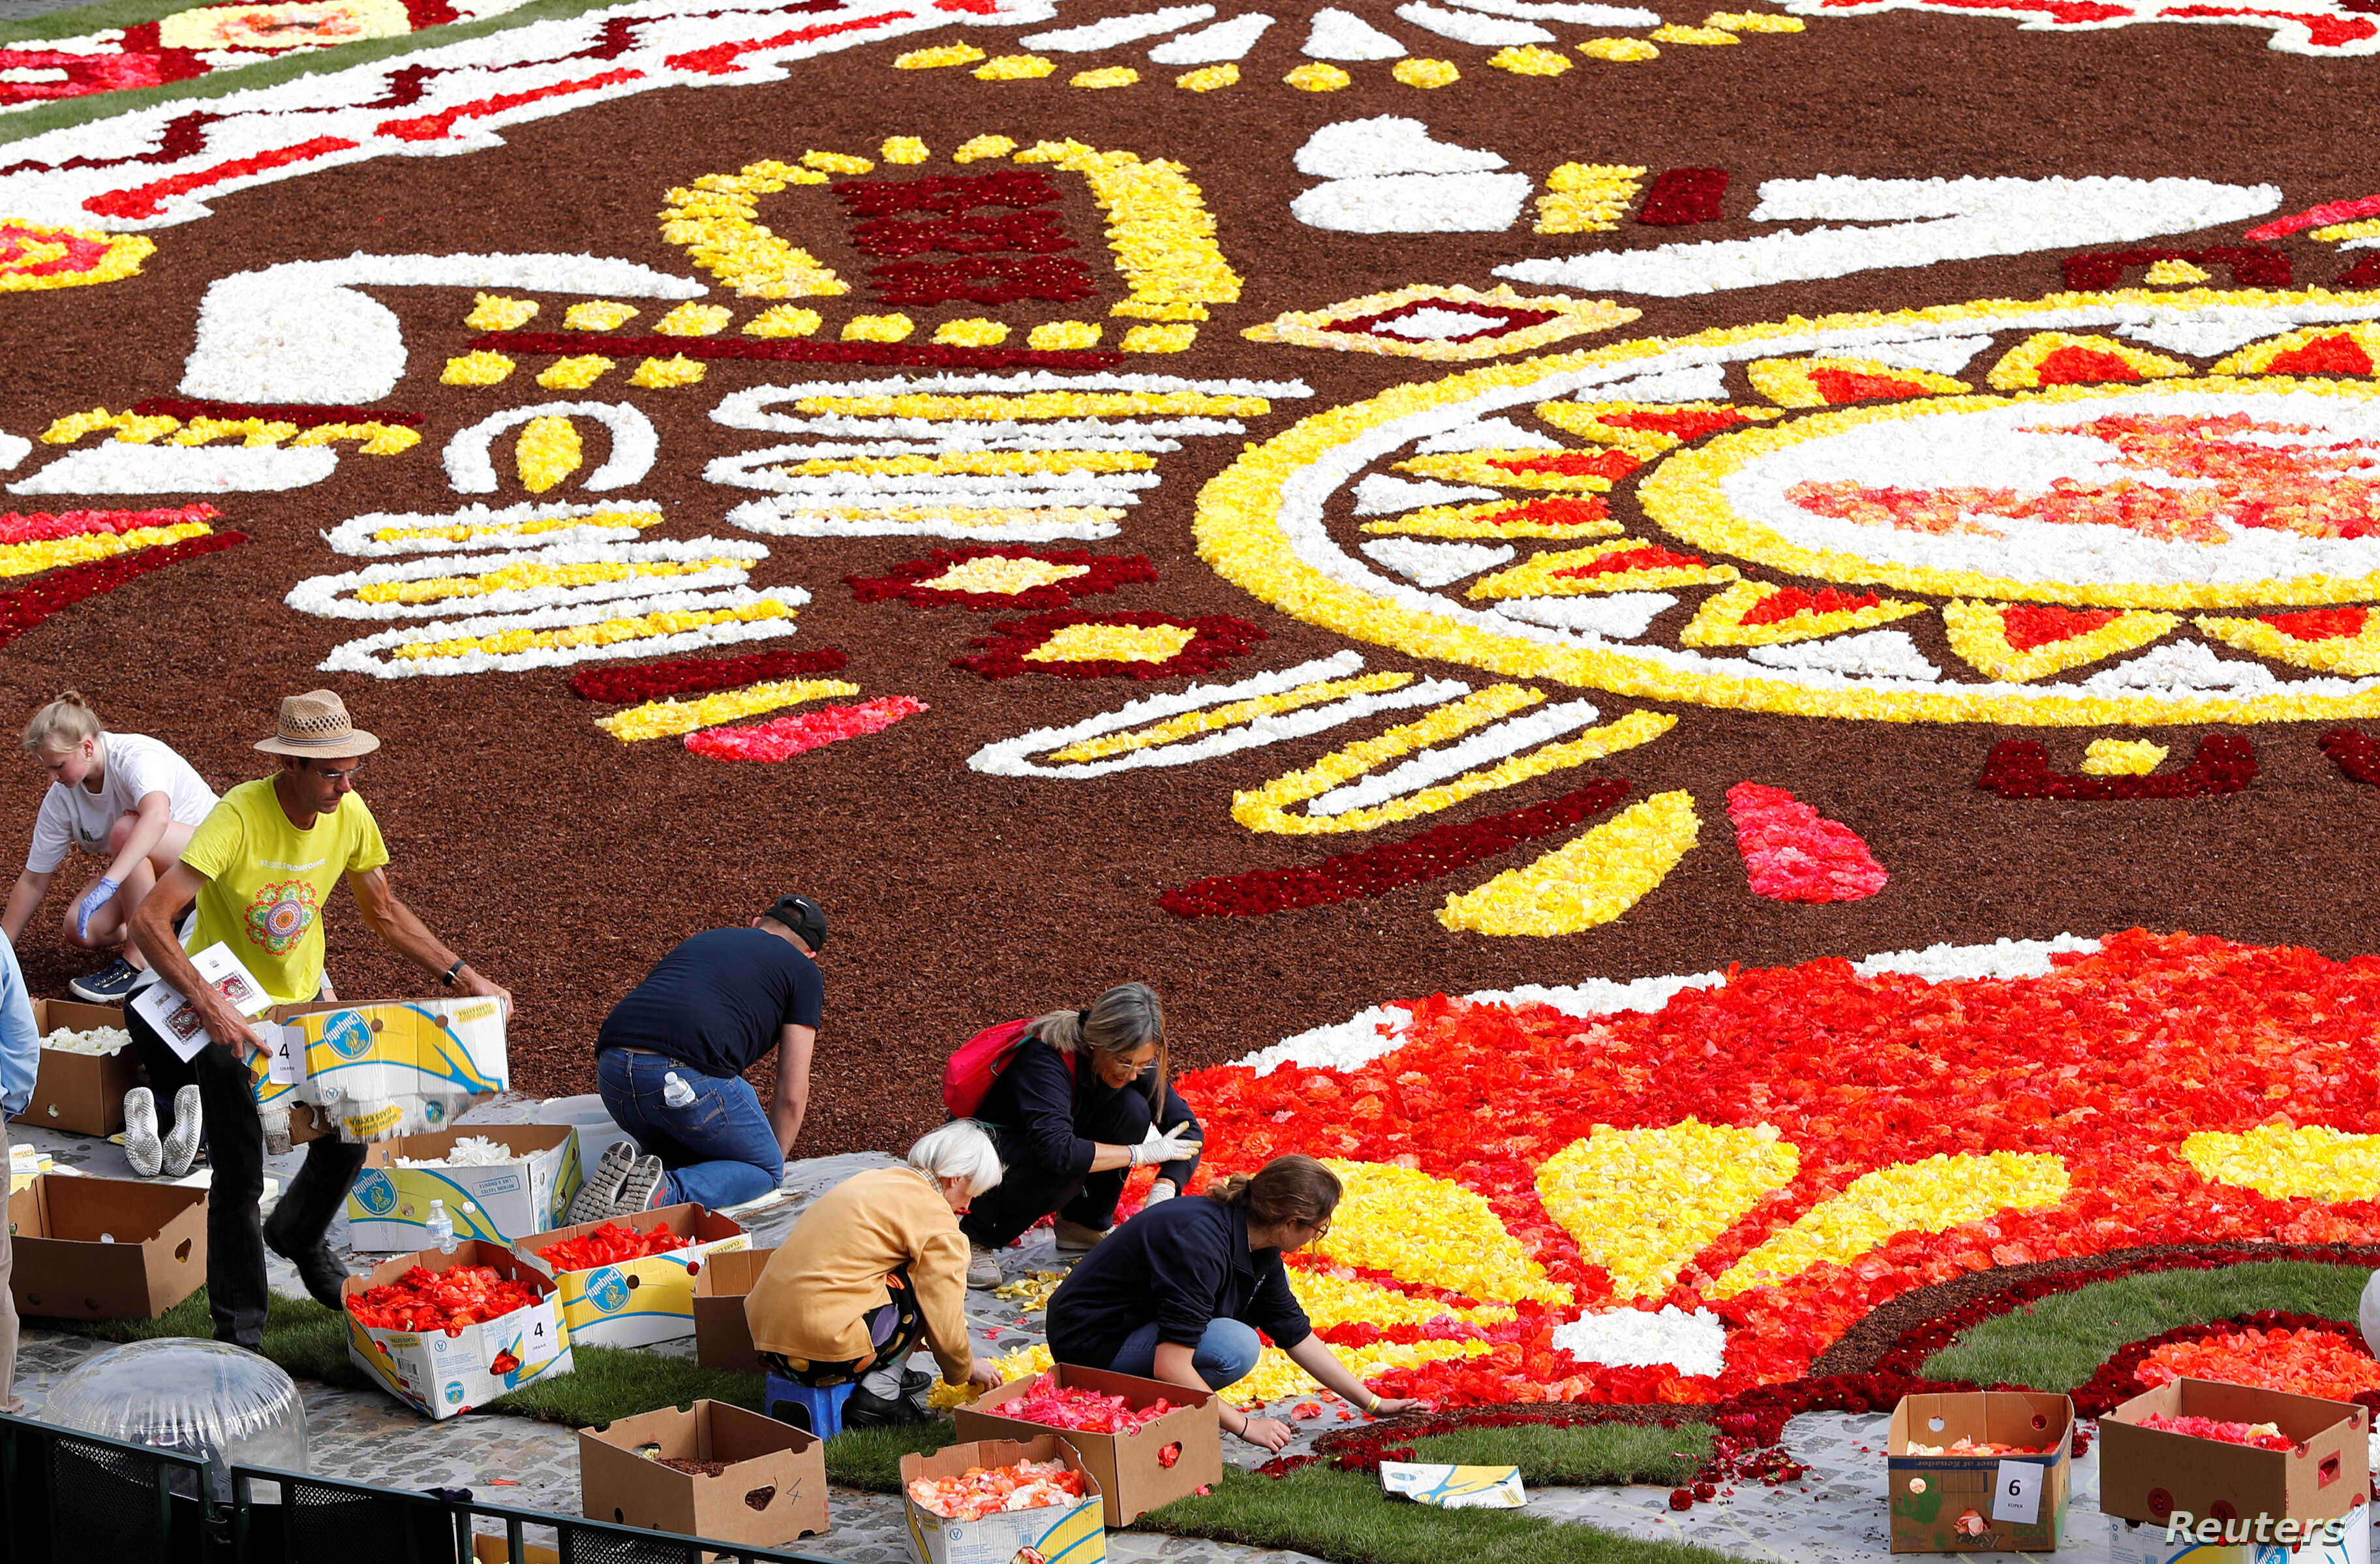 Gardeners adjust flowers on a 1,800-square-meter flower carpet at Brussels' Grand Place, Belgium, Aug. 16, 2018.